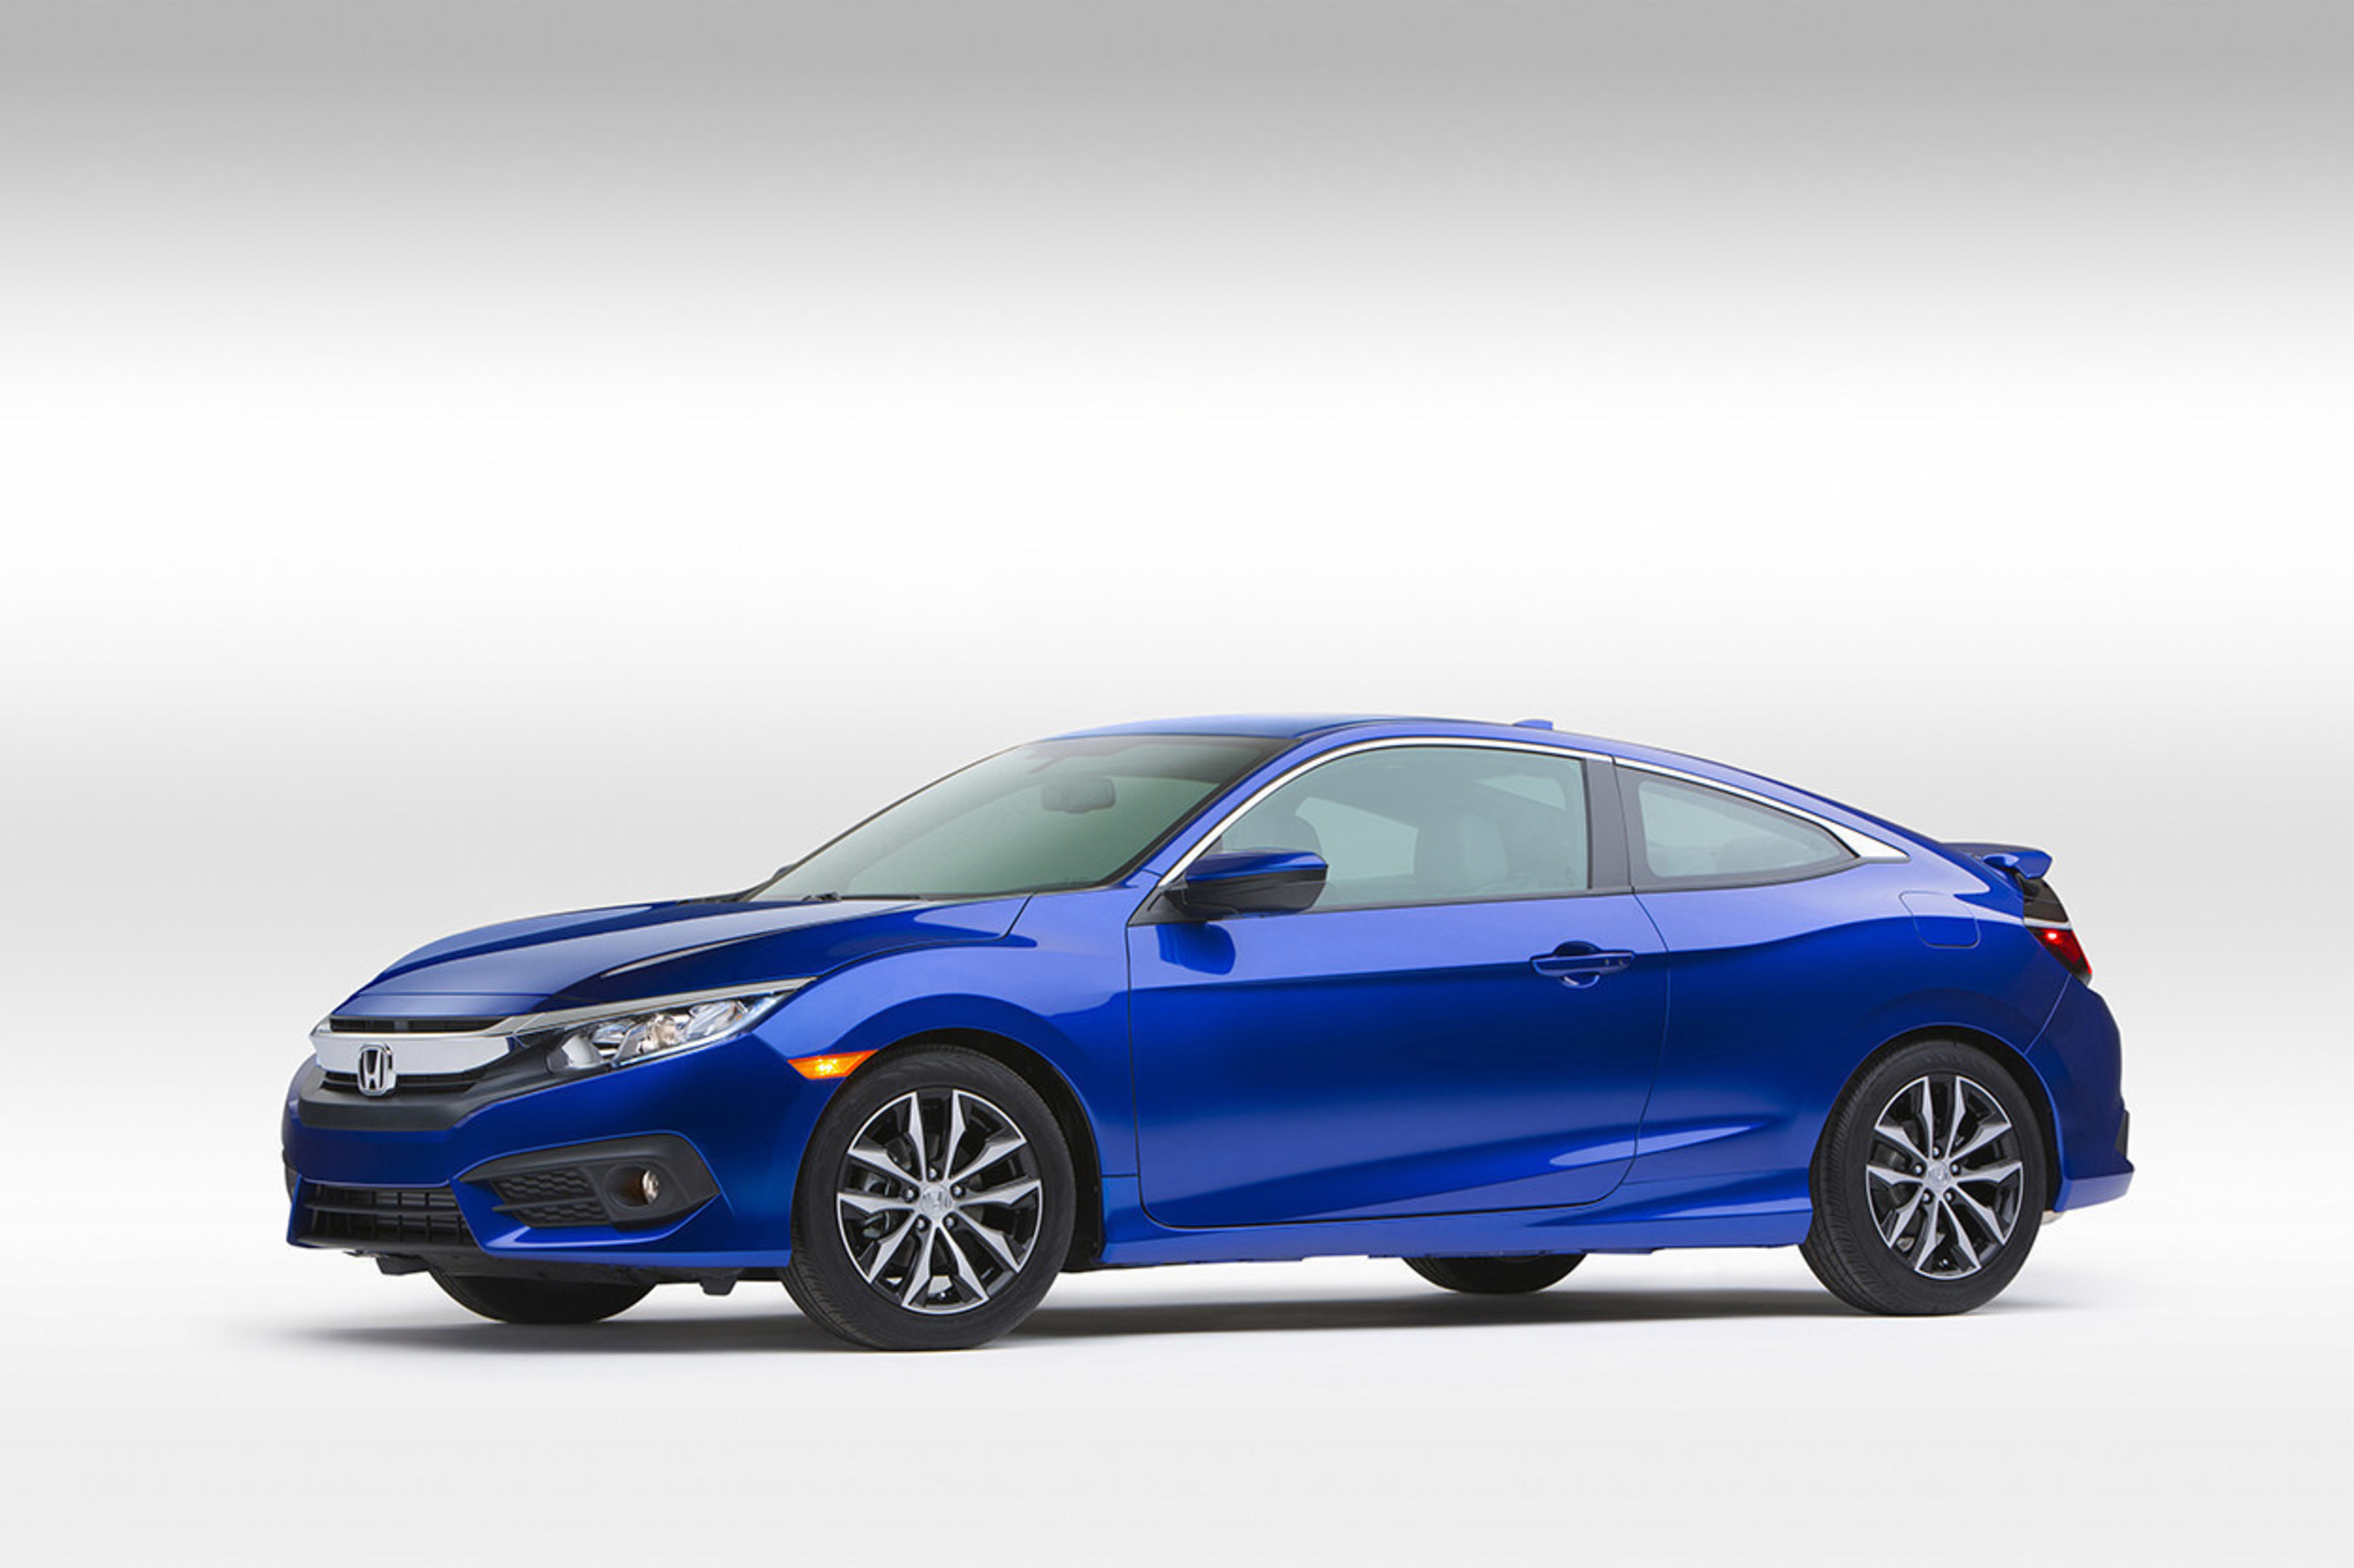 Dynamically Styled, More Powerful and Fuel-Efficient 2016 Honda Civic Coupe Makes First Public Appearance at Los Angeles Auto Show